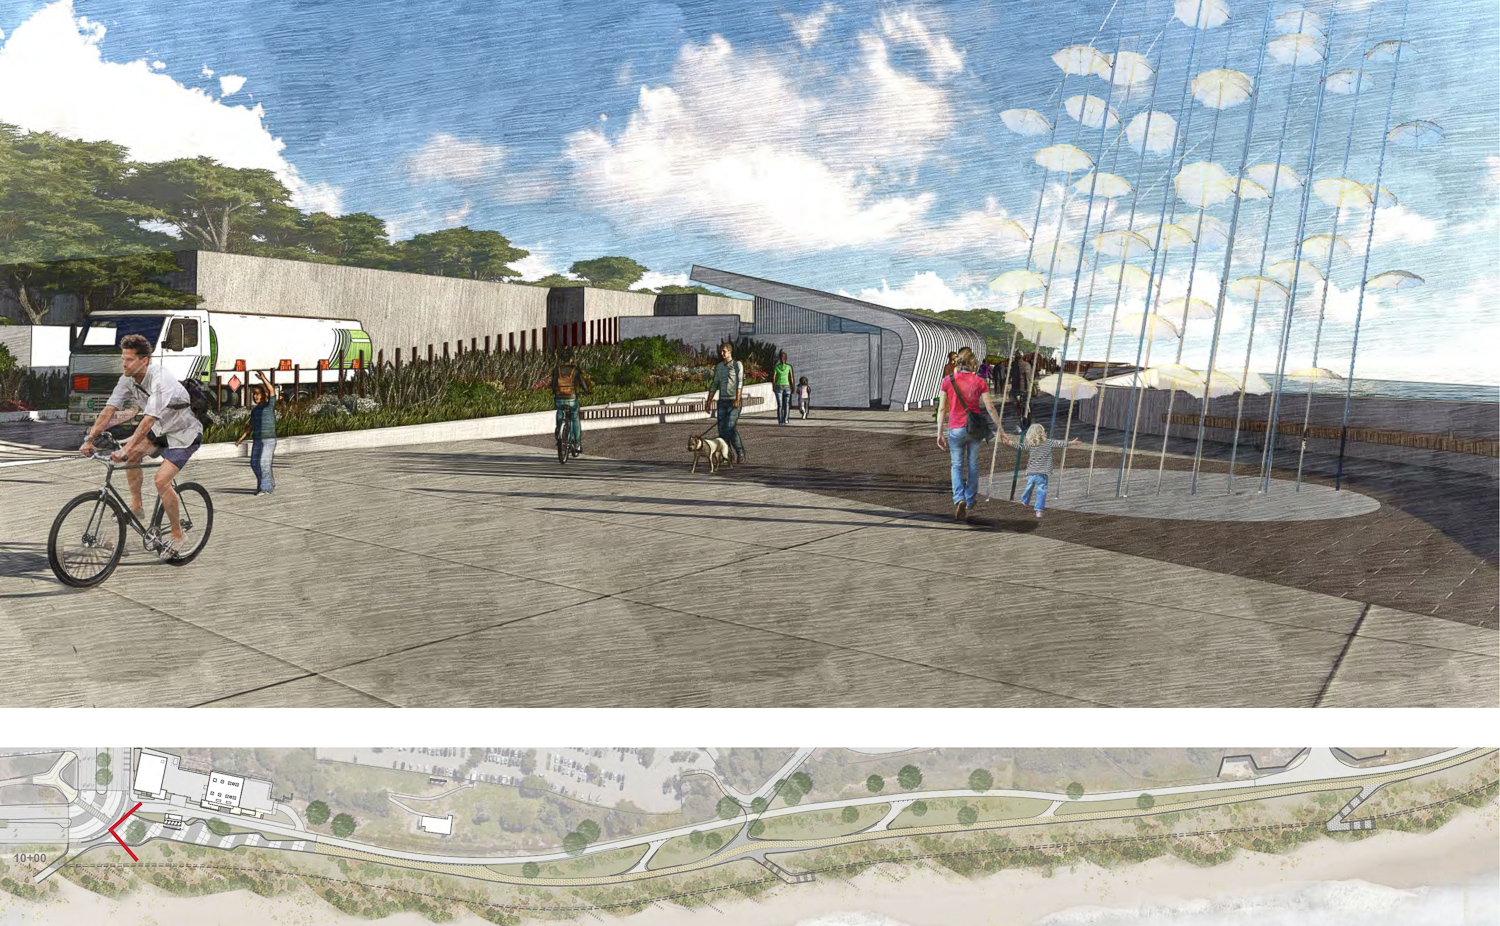 Sloat Plaza and restroom near the intersection along South Ocean Beach, illustration from MFLA